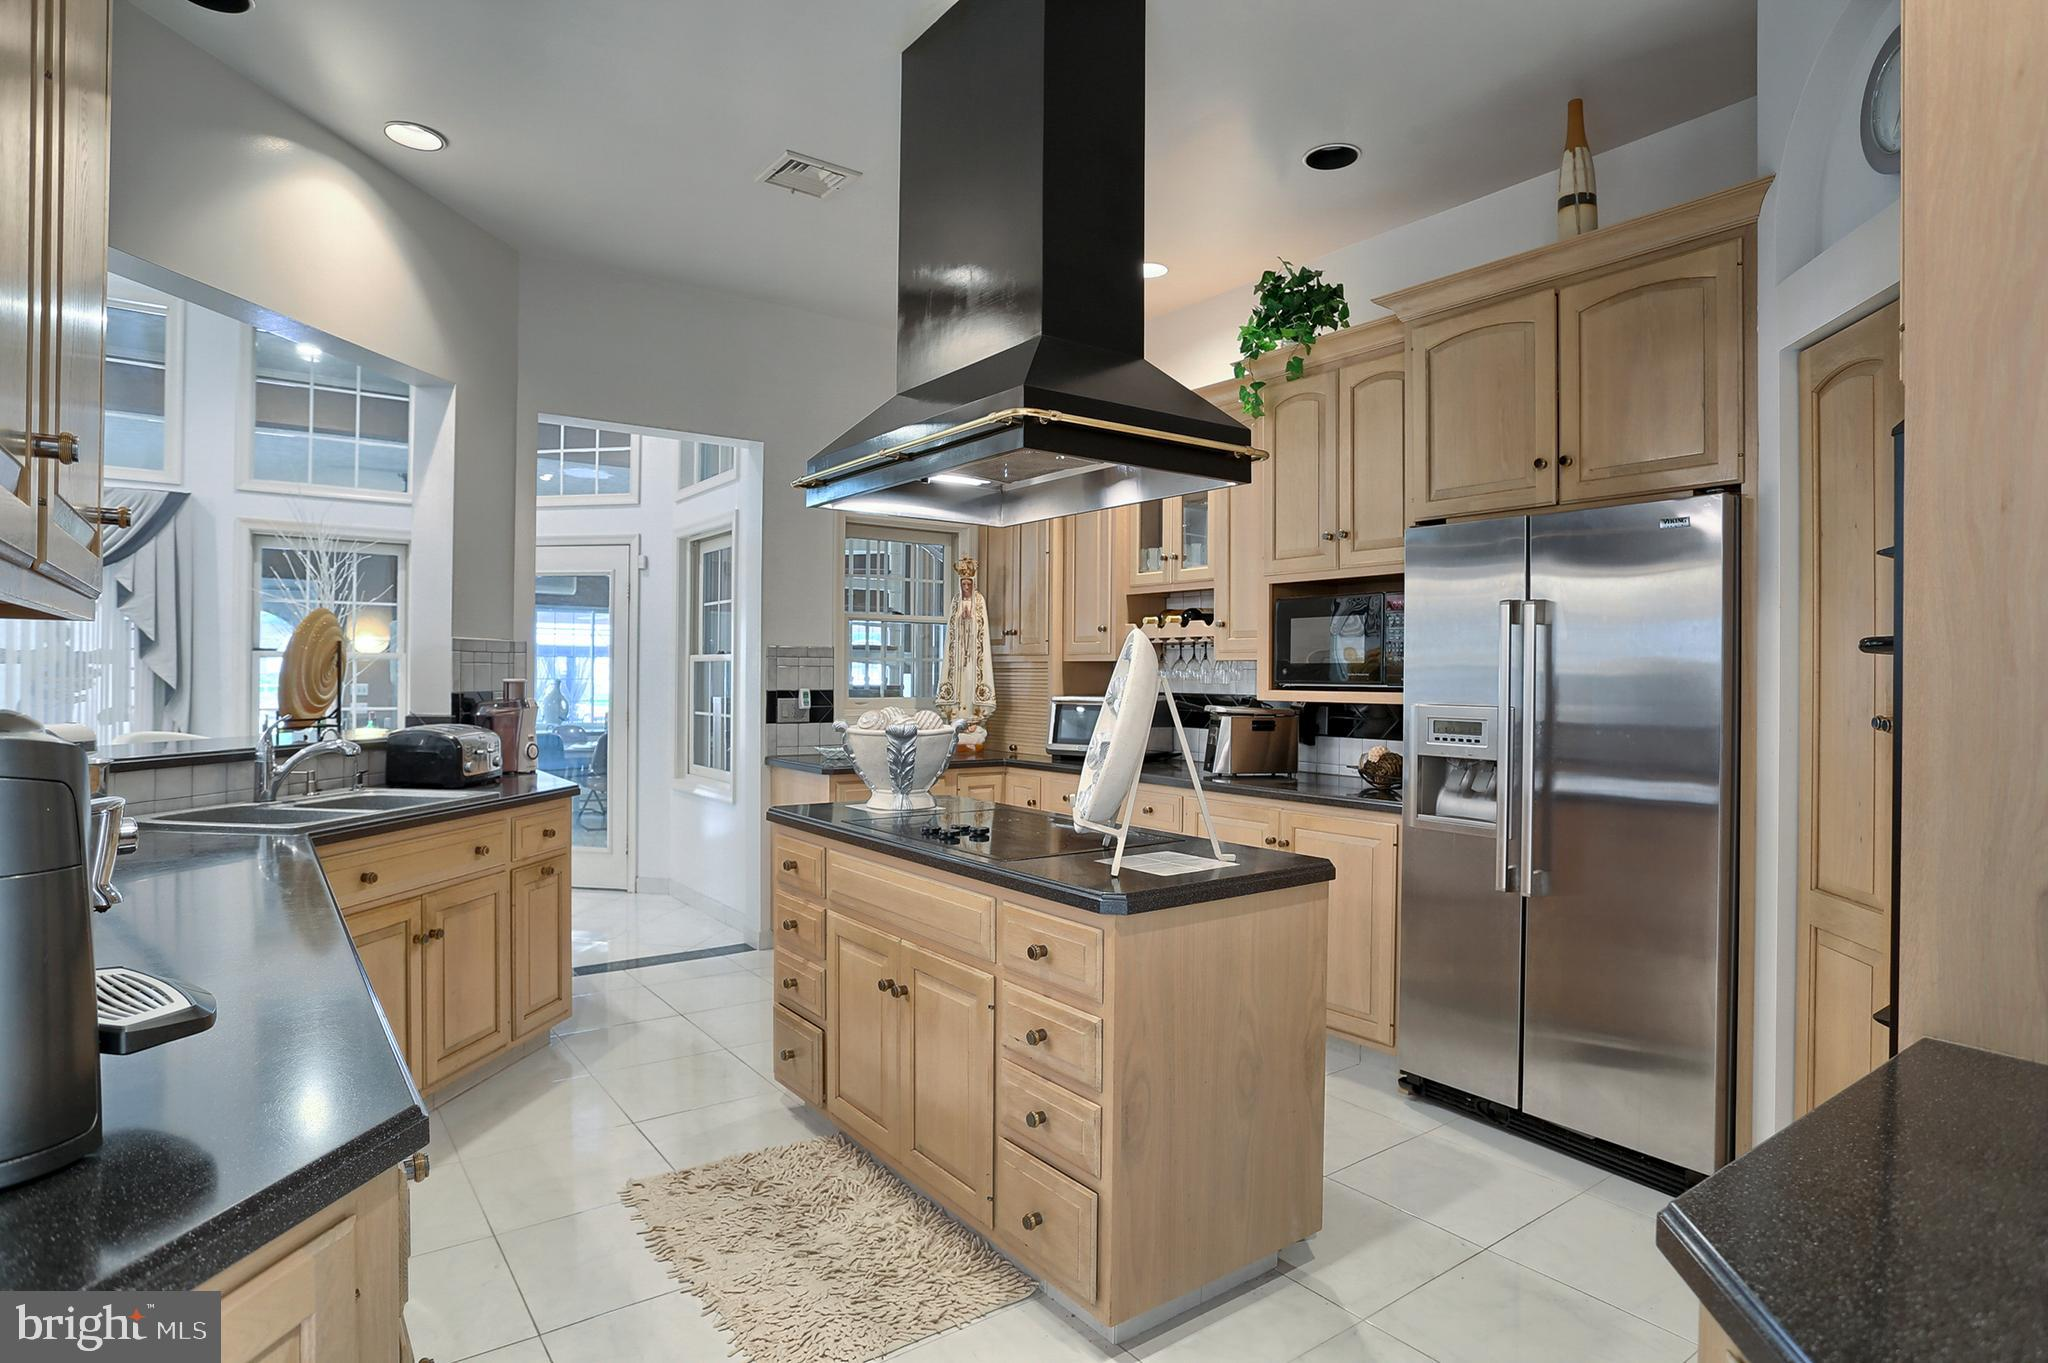 Corian counter tops and stainless appliances